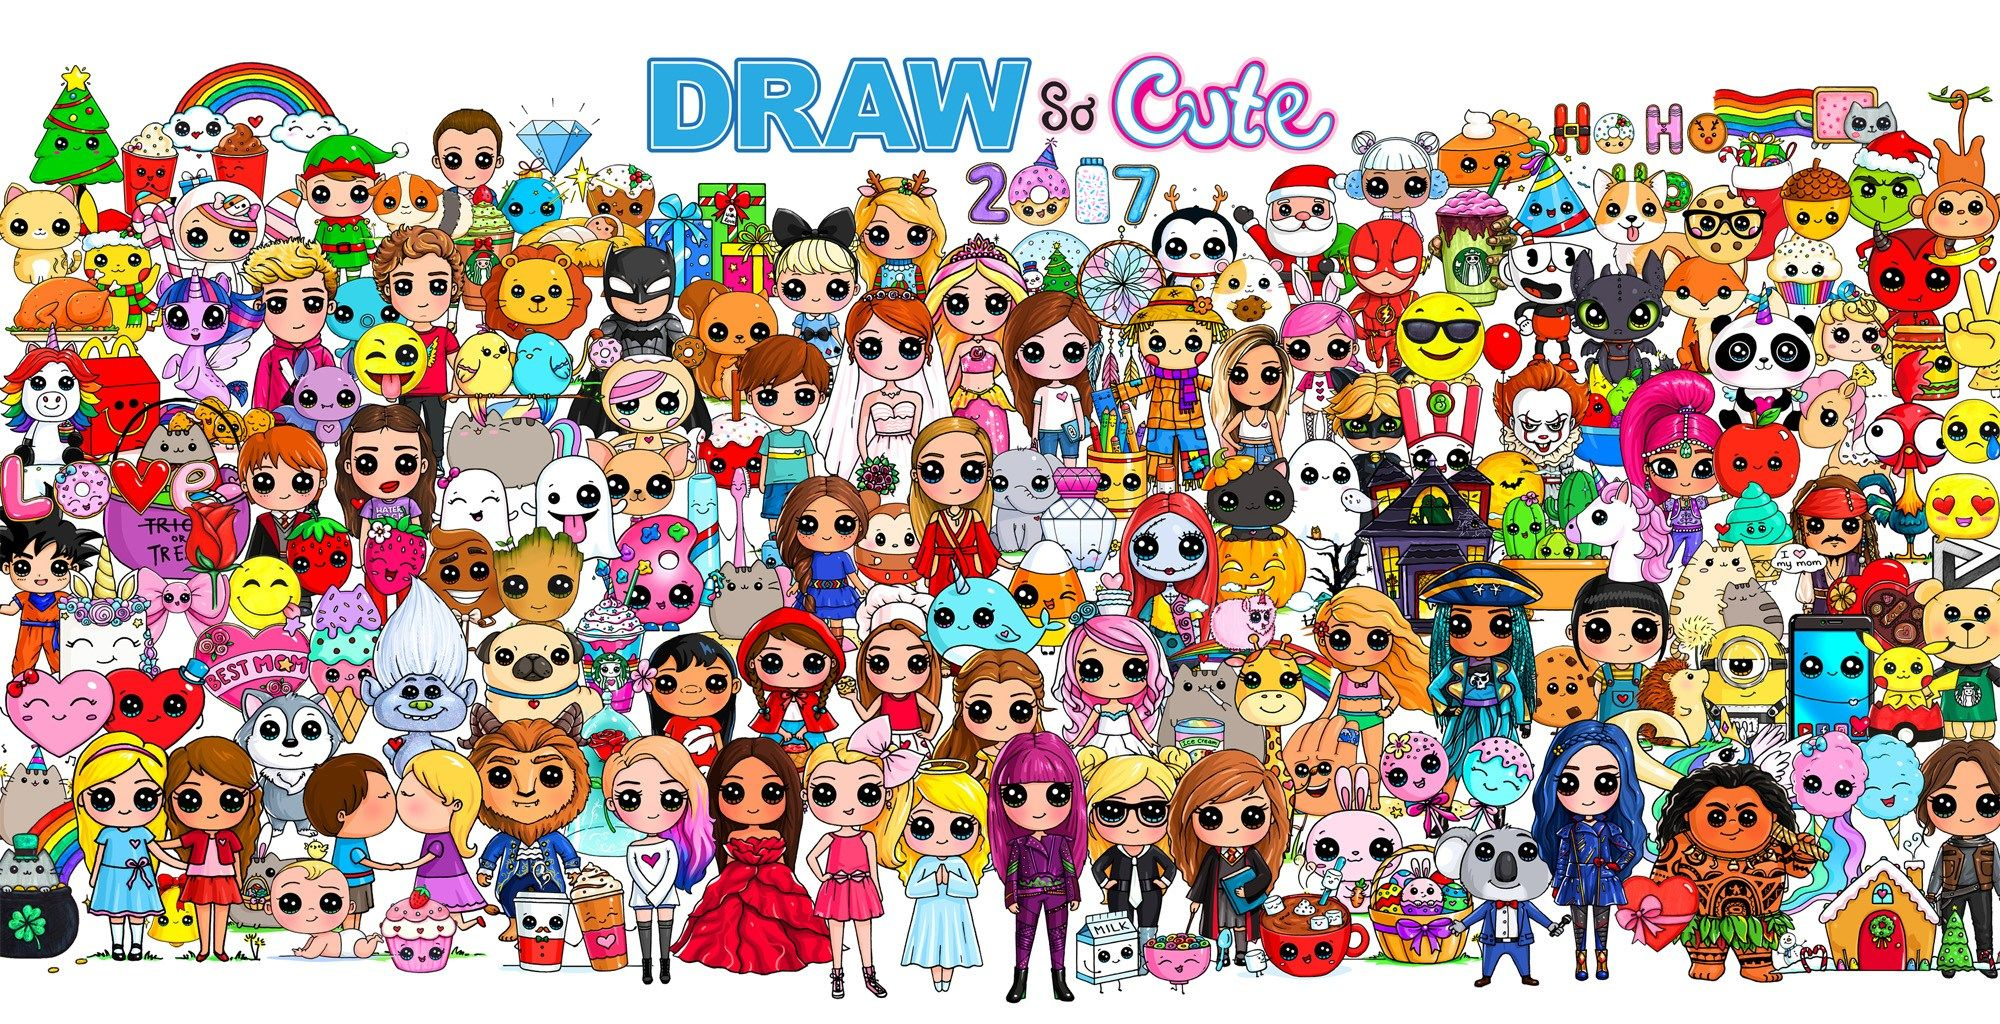 Happy Anniversary Draw So Cute 2017 Characters Poster Drawing Cute Drawings Kawaii Drawings